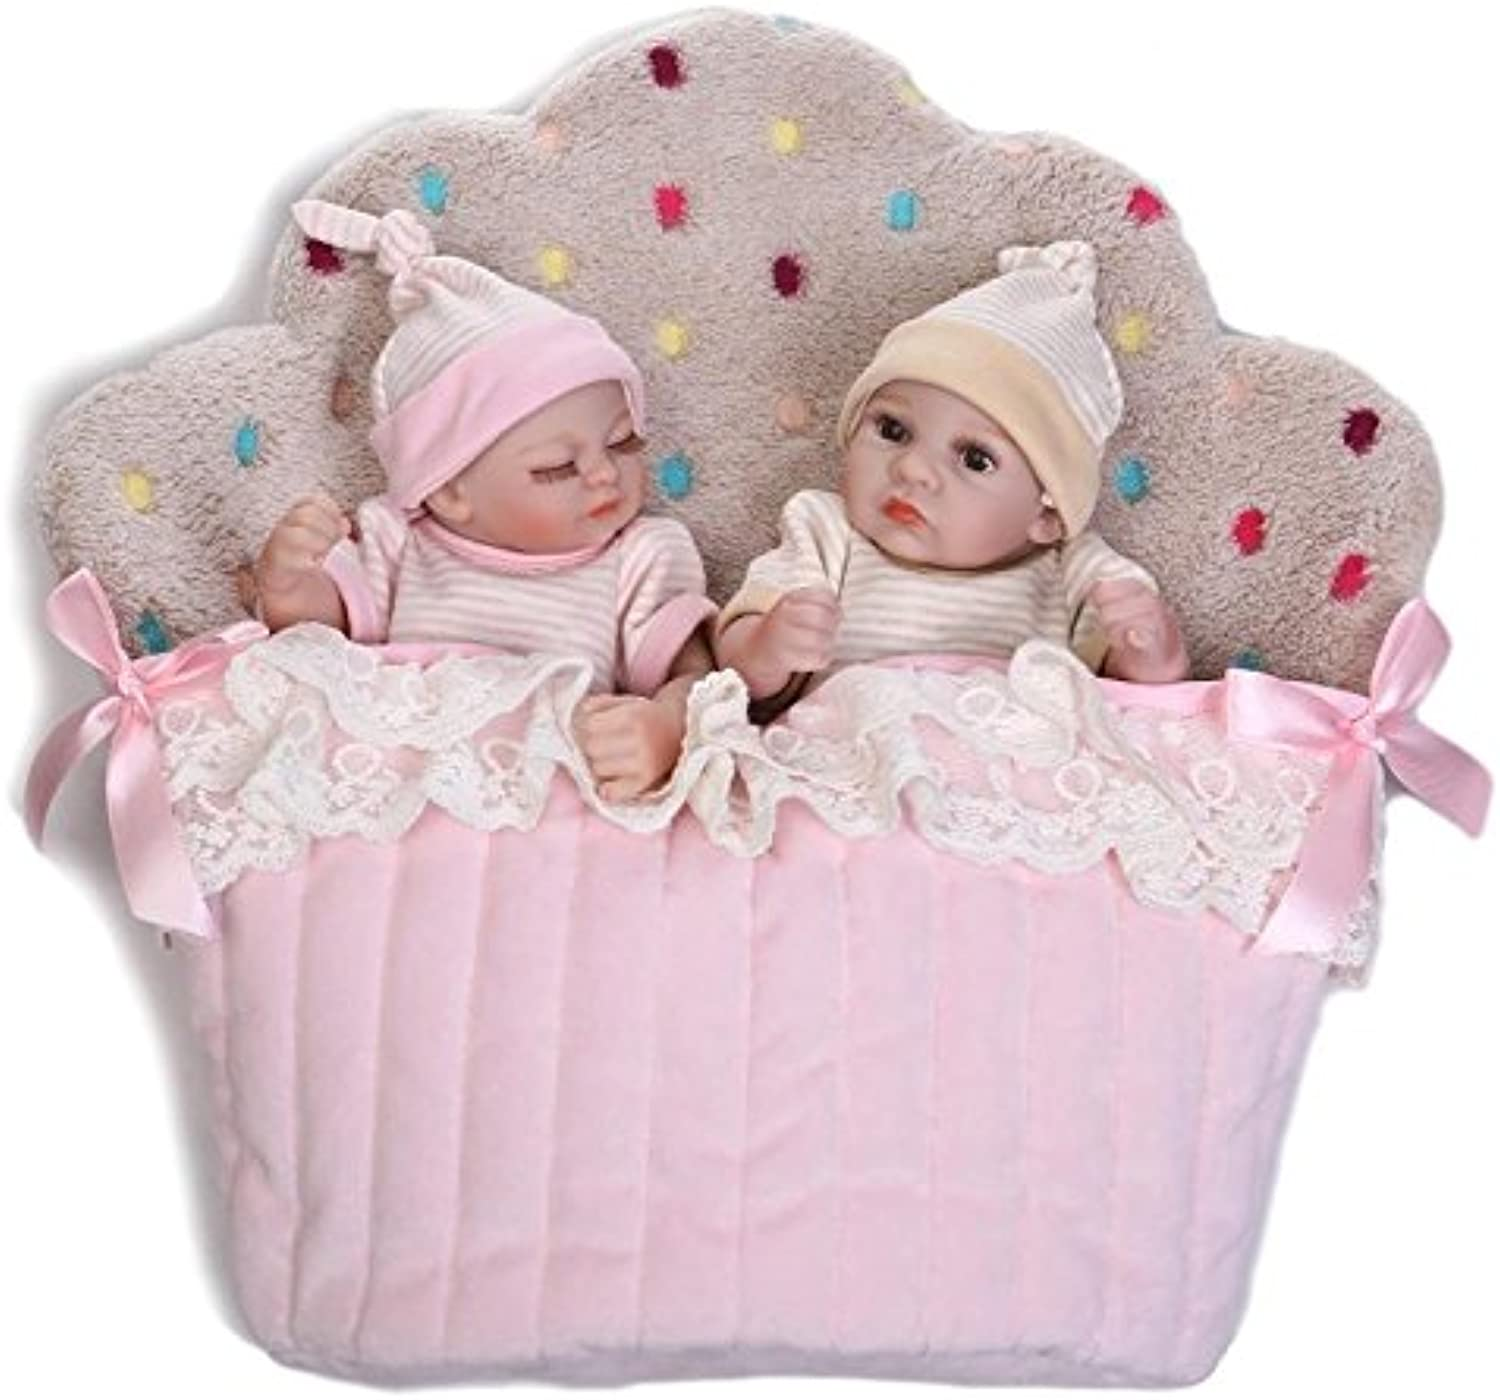 NPK Collection Tiny Reborn Baby Doll Twins Full Silicone 11inch 26cm Newborn Silicone Baby Dolls Twins Kids Bathing Sleeping Doll Collectible Toy